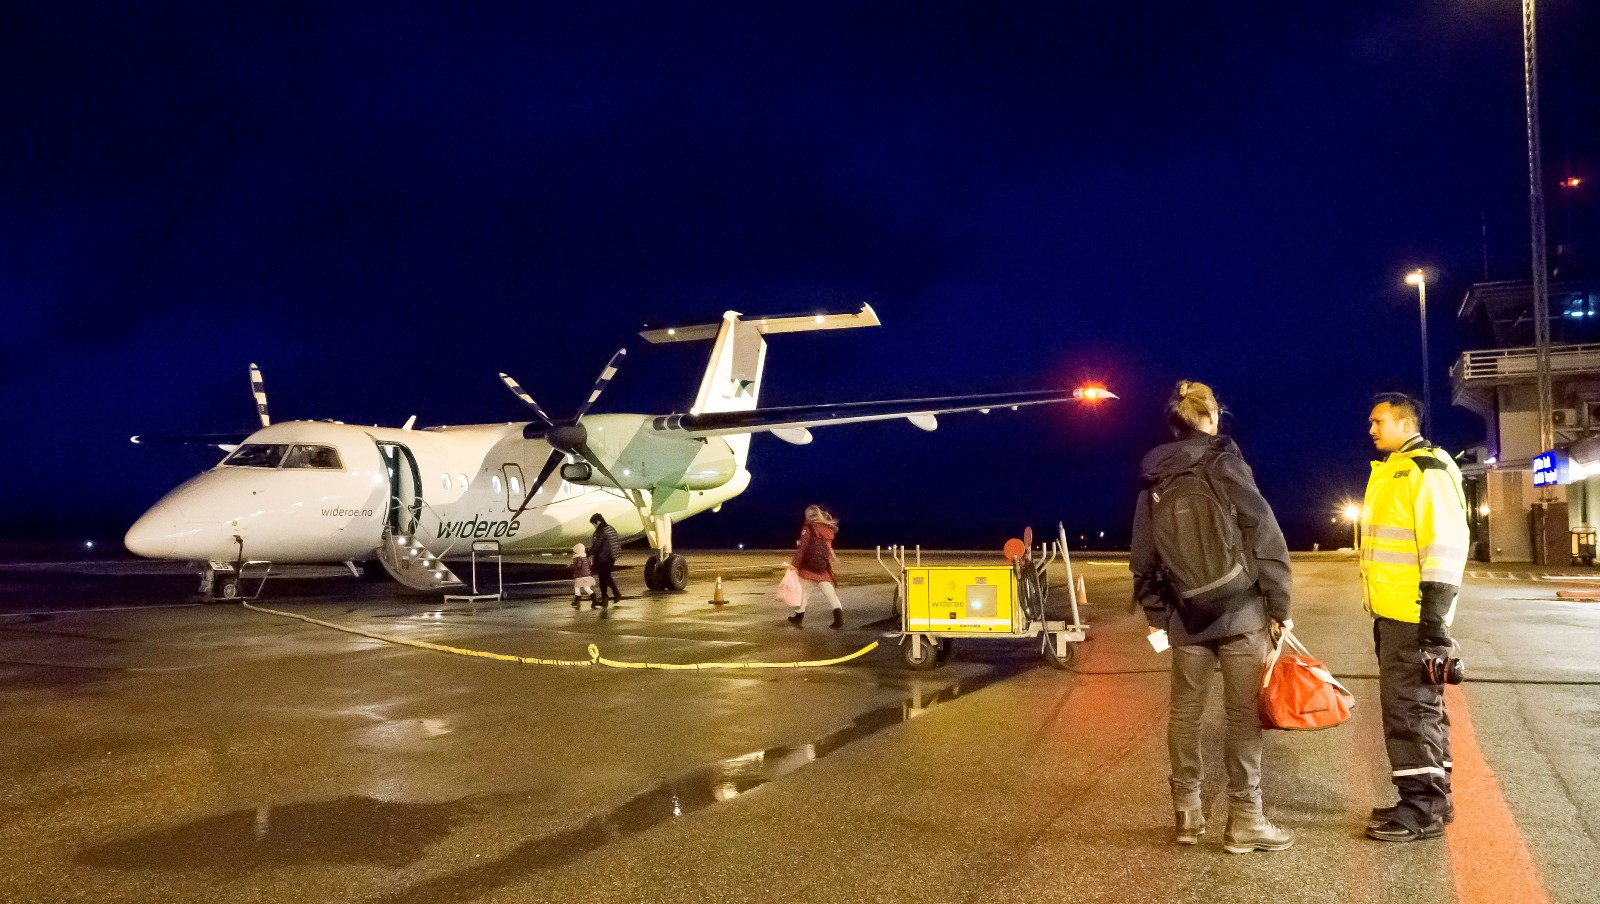 Russian Exercise Jams Aircraft GPS in North Norway for a Week – NRK